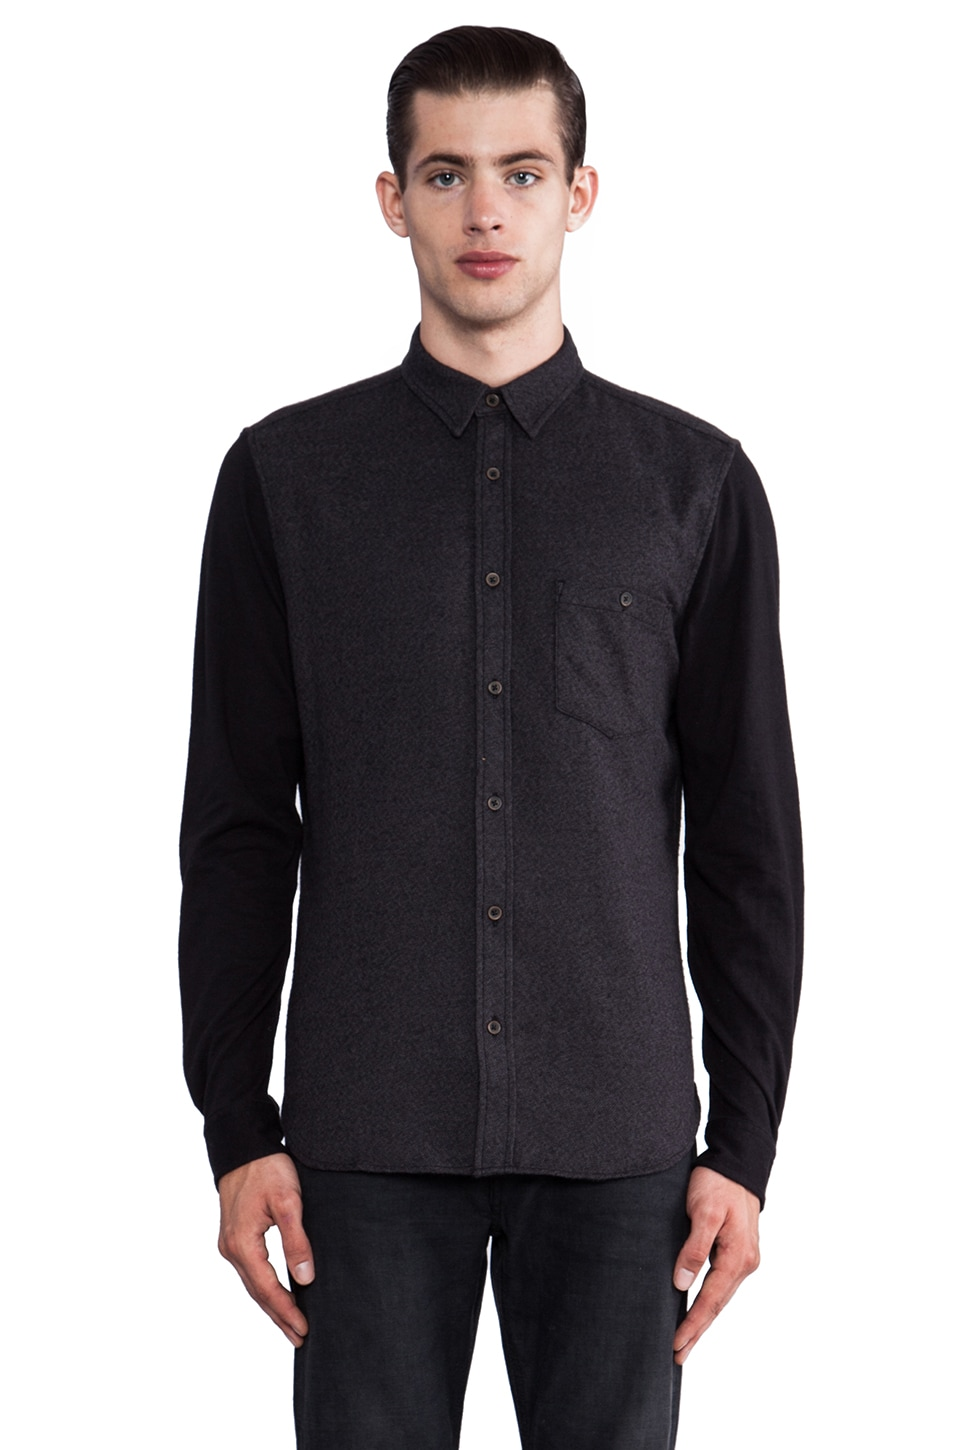 7 For All Mankind Knit Sleeve Button Down in Onyx